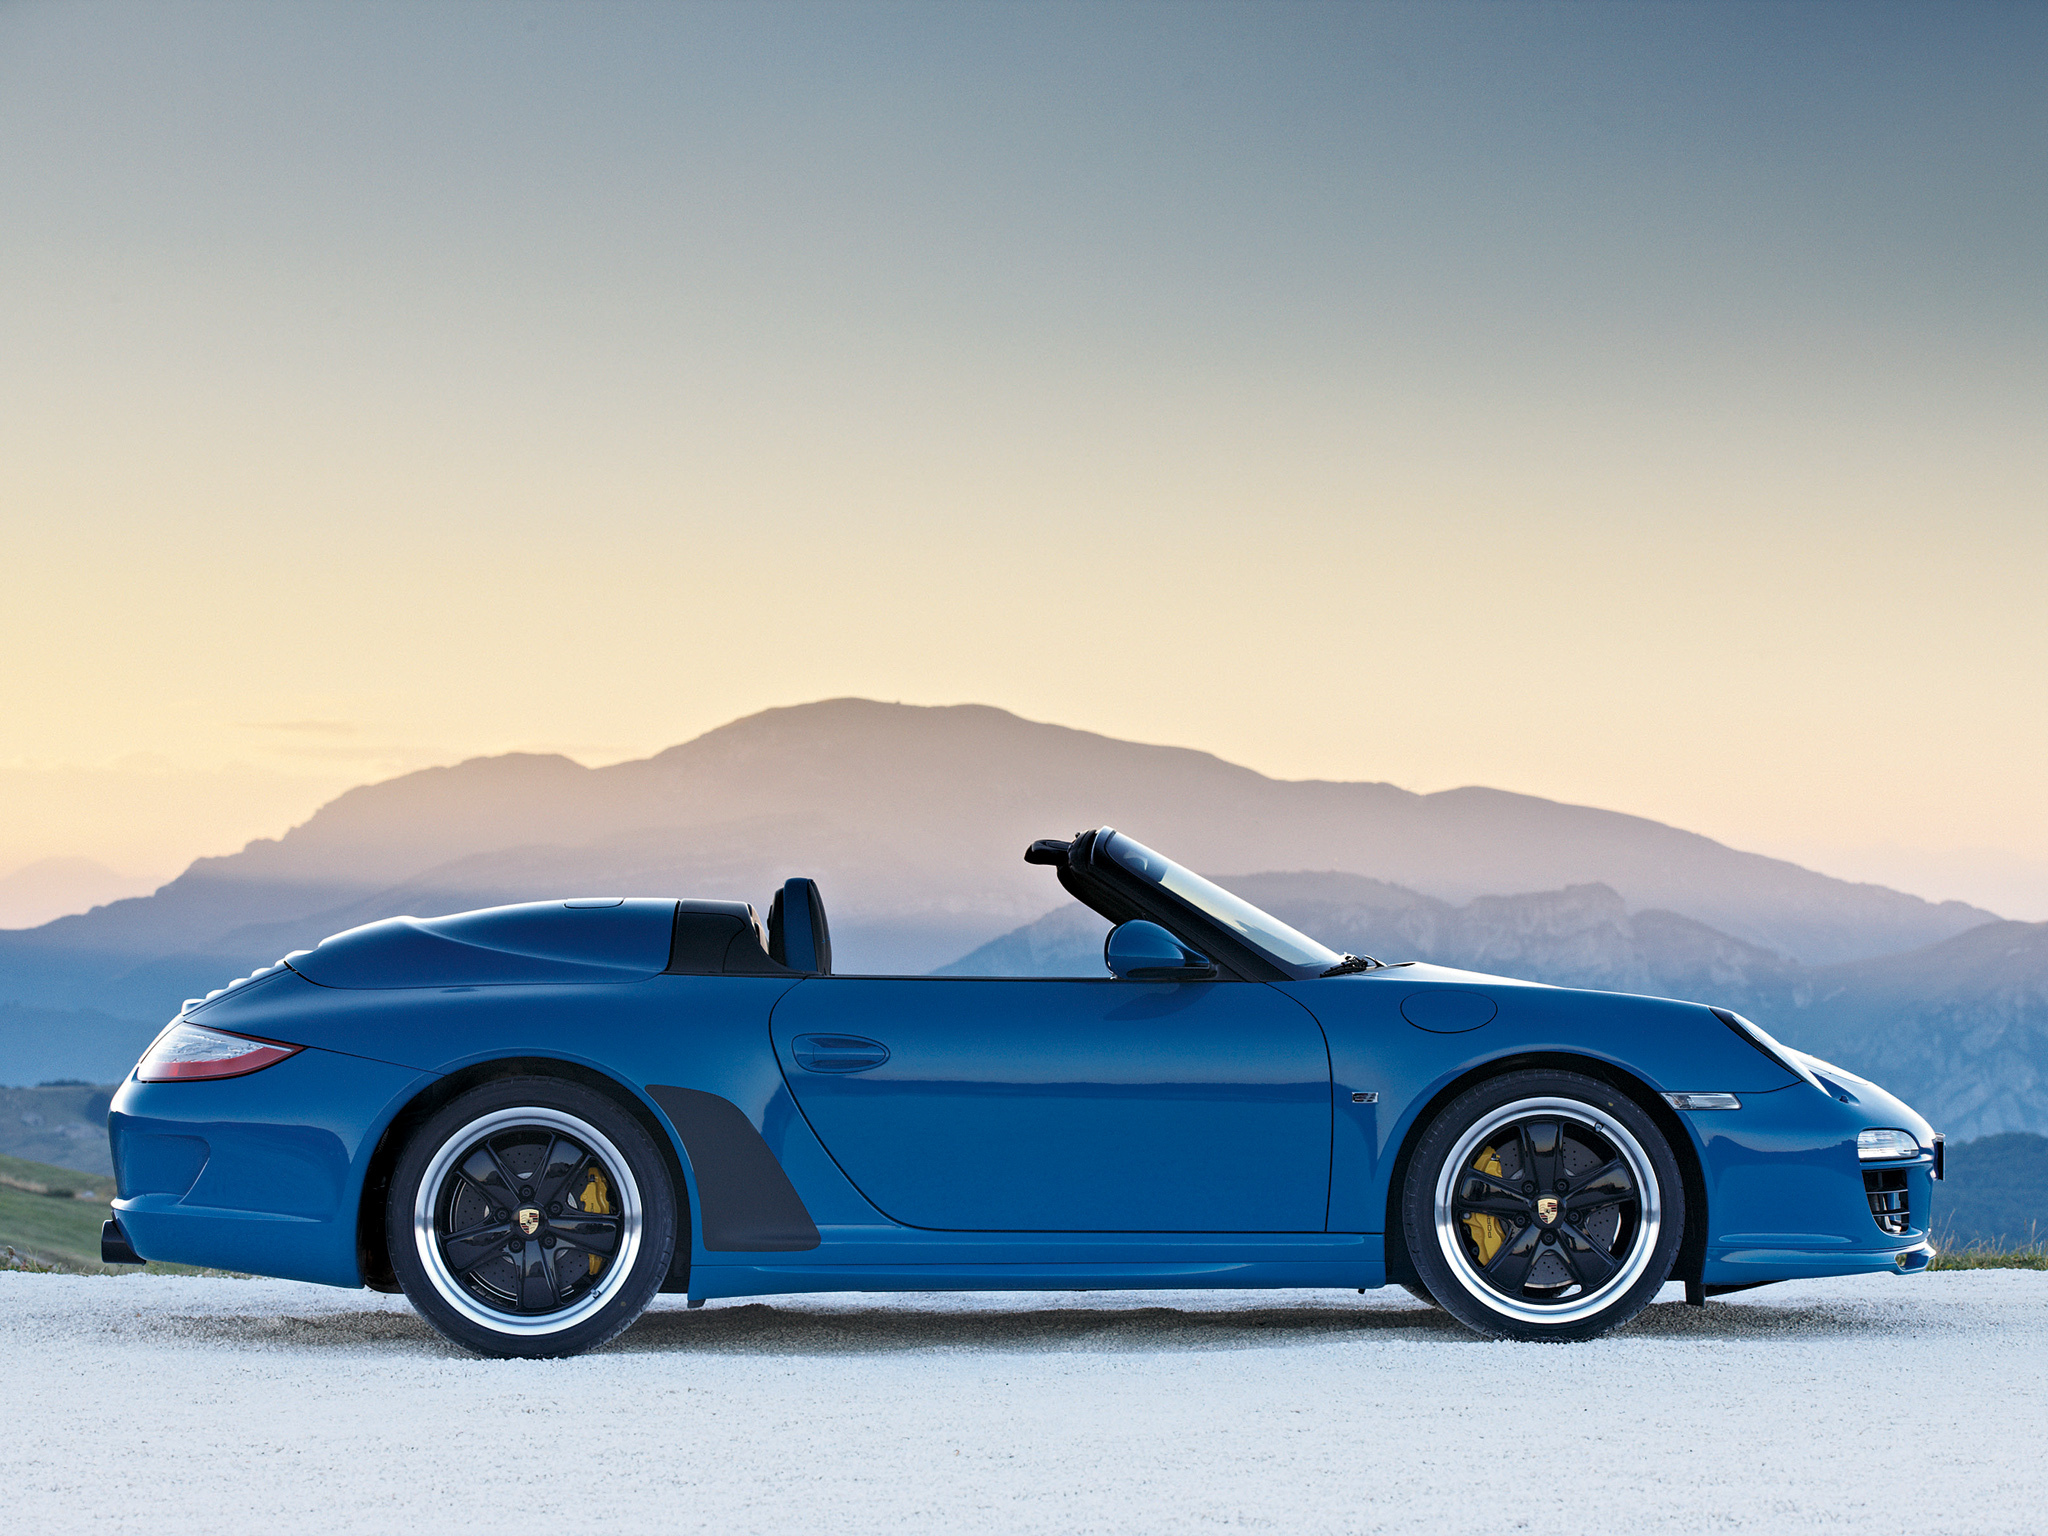 Porsche Images Porsche 911 Speedster Hd Wallpaper And